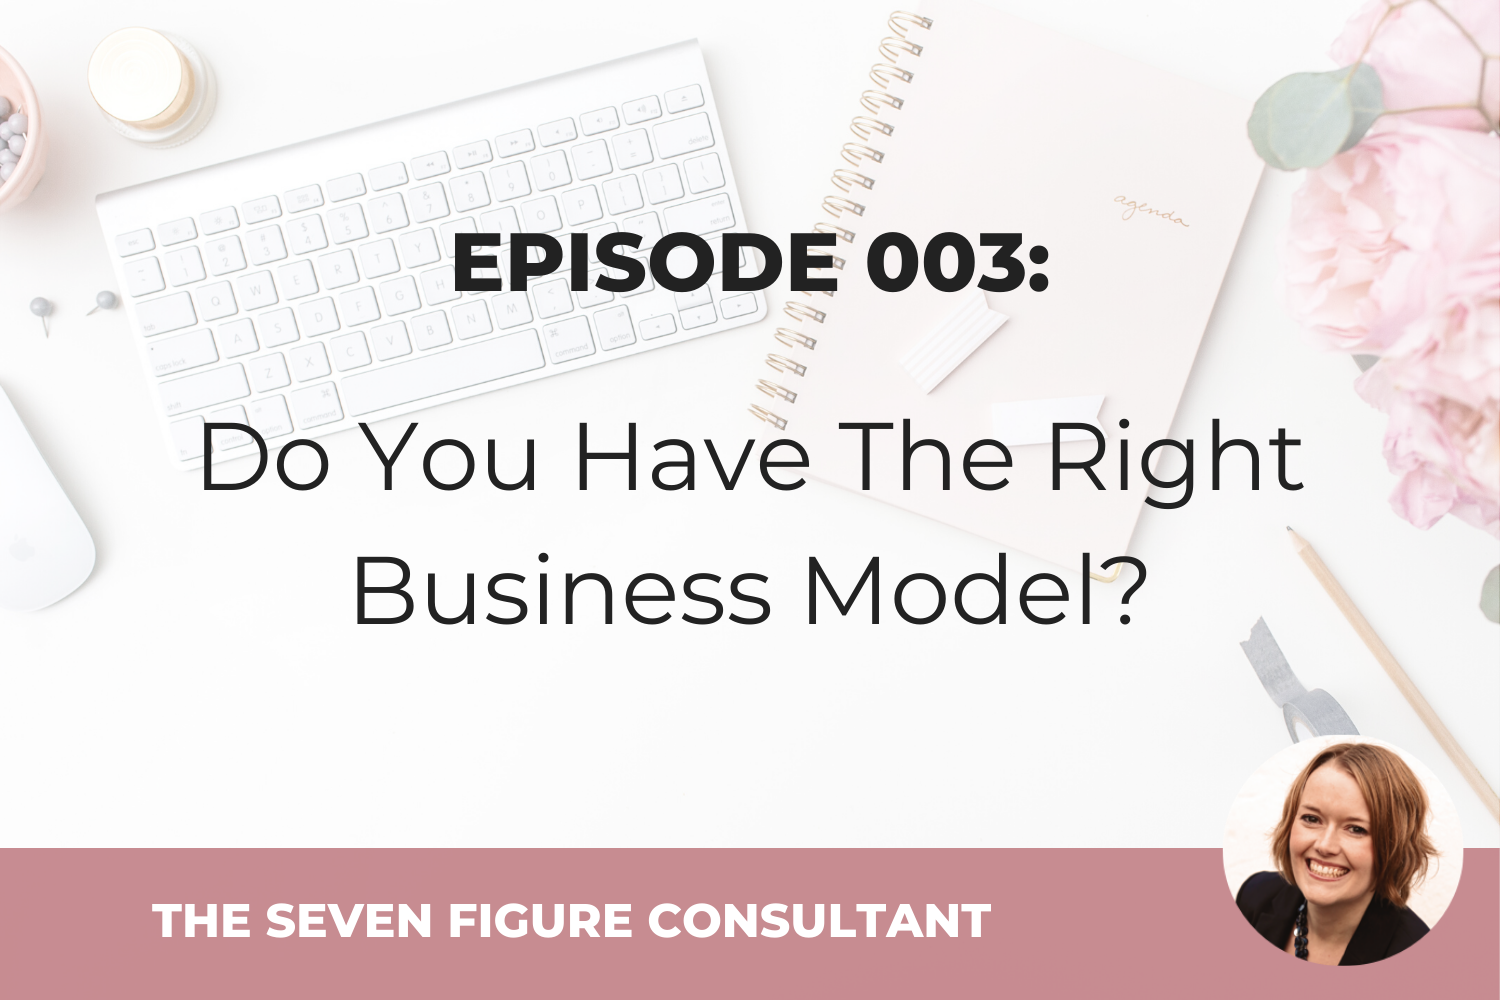 Episode 003: Do You Have The Right Business Model?